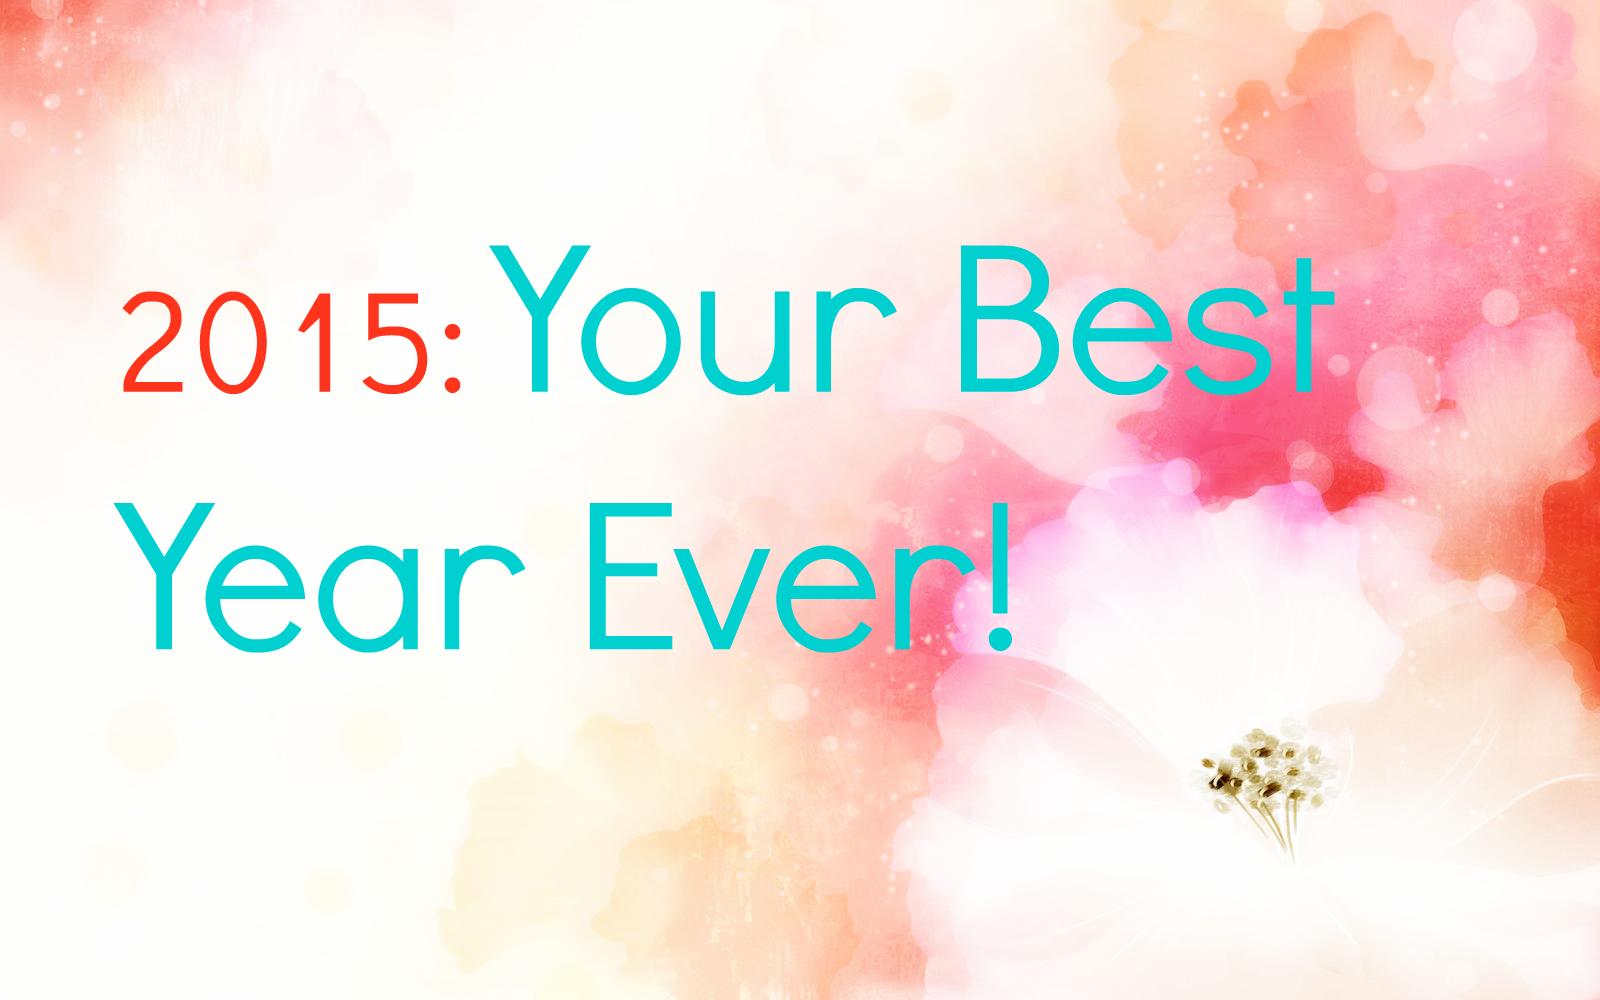 Fitness Friday:: Five Free Ways To Make 2015 Your Best Year Ever